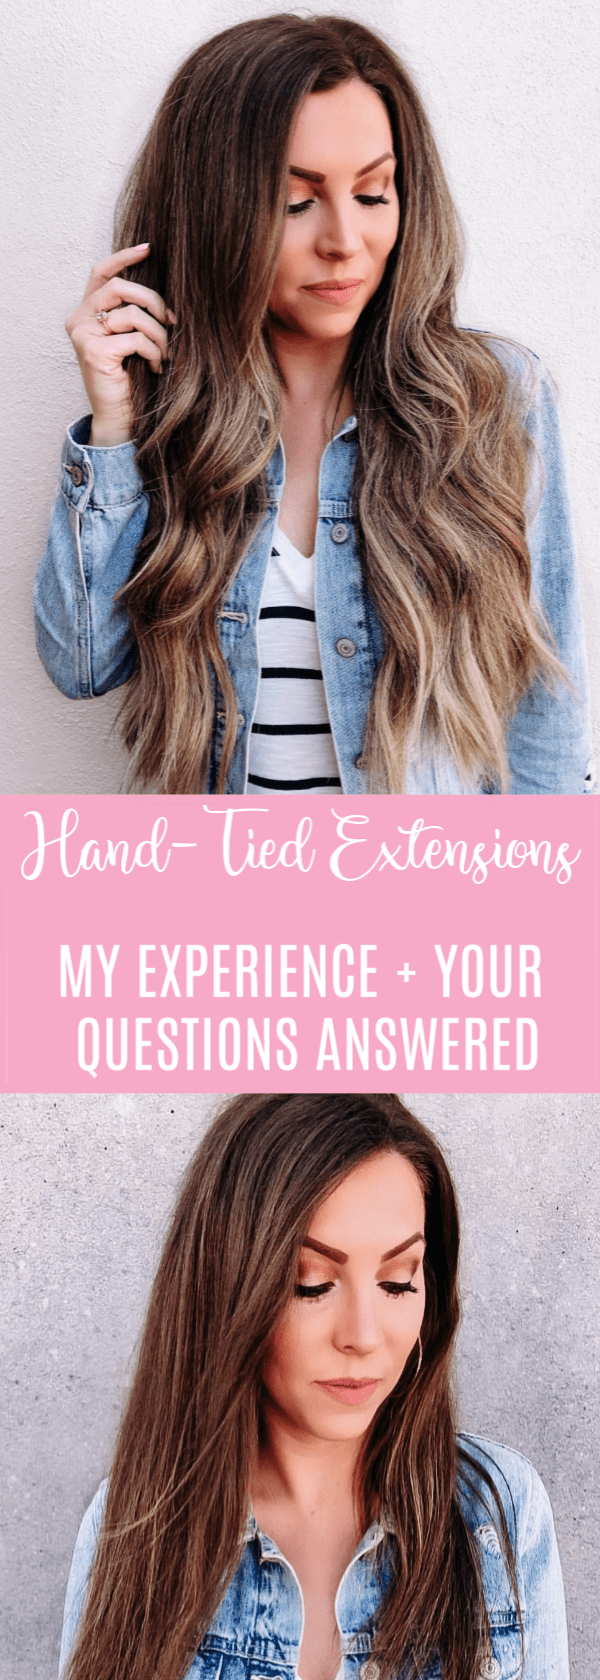 hand-tied-extensions-your-questions-answered